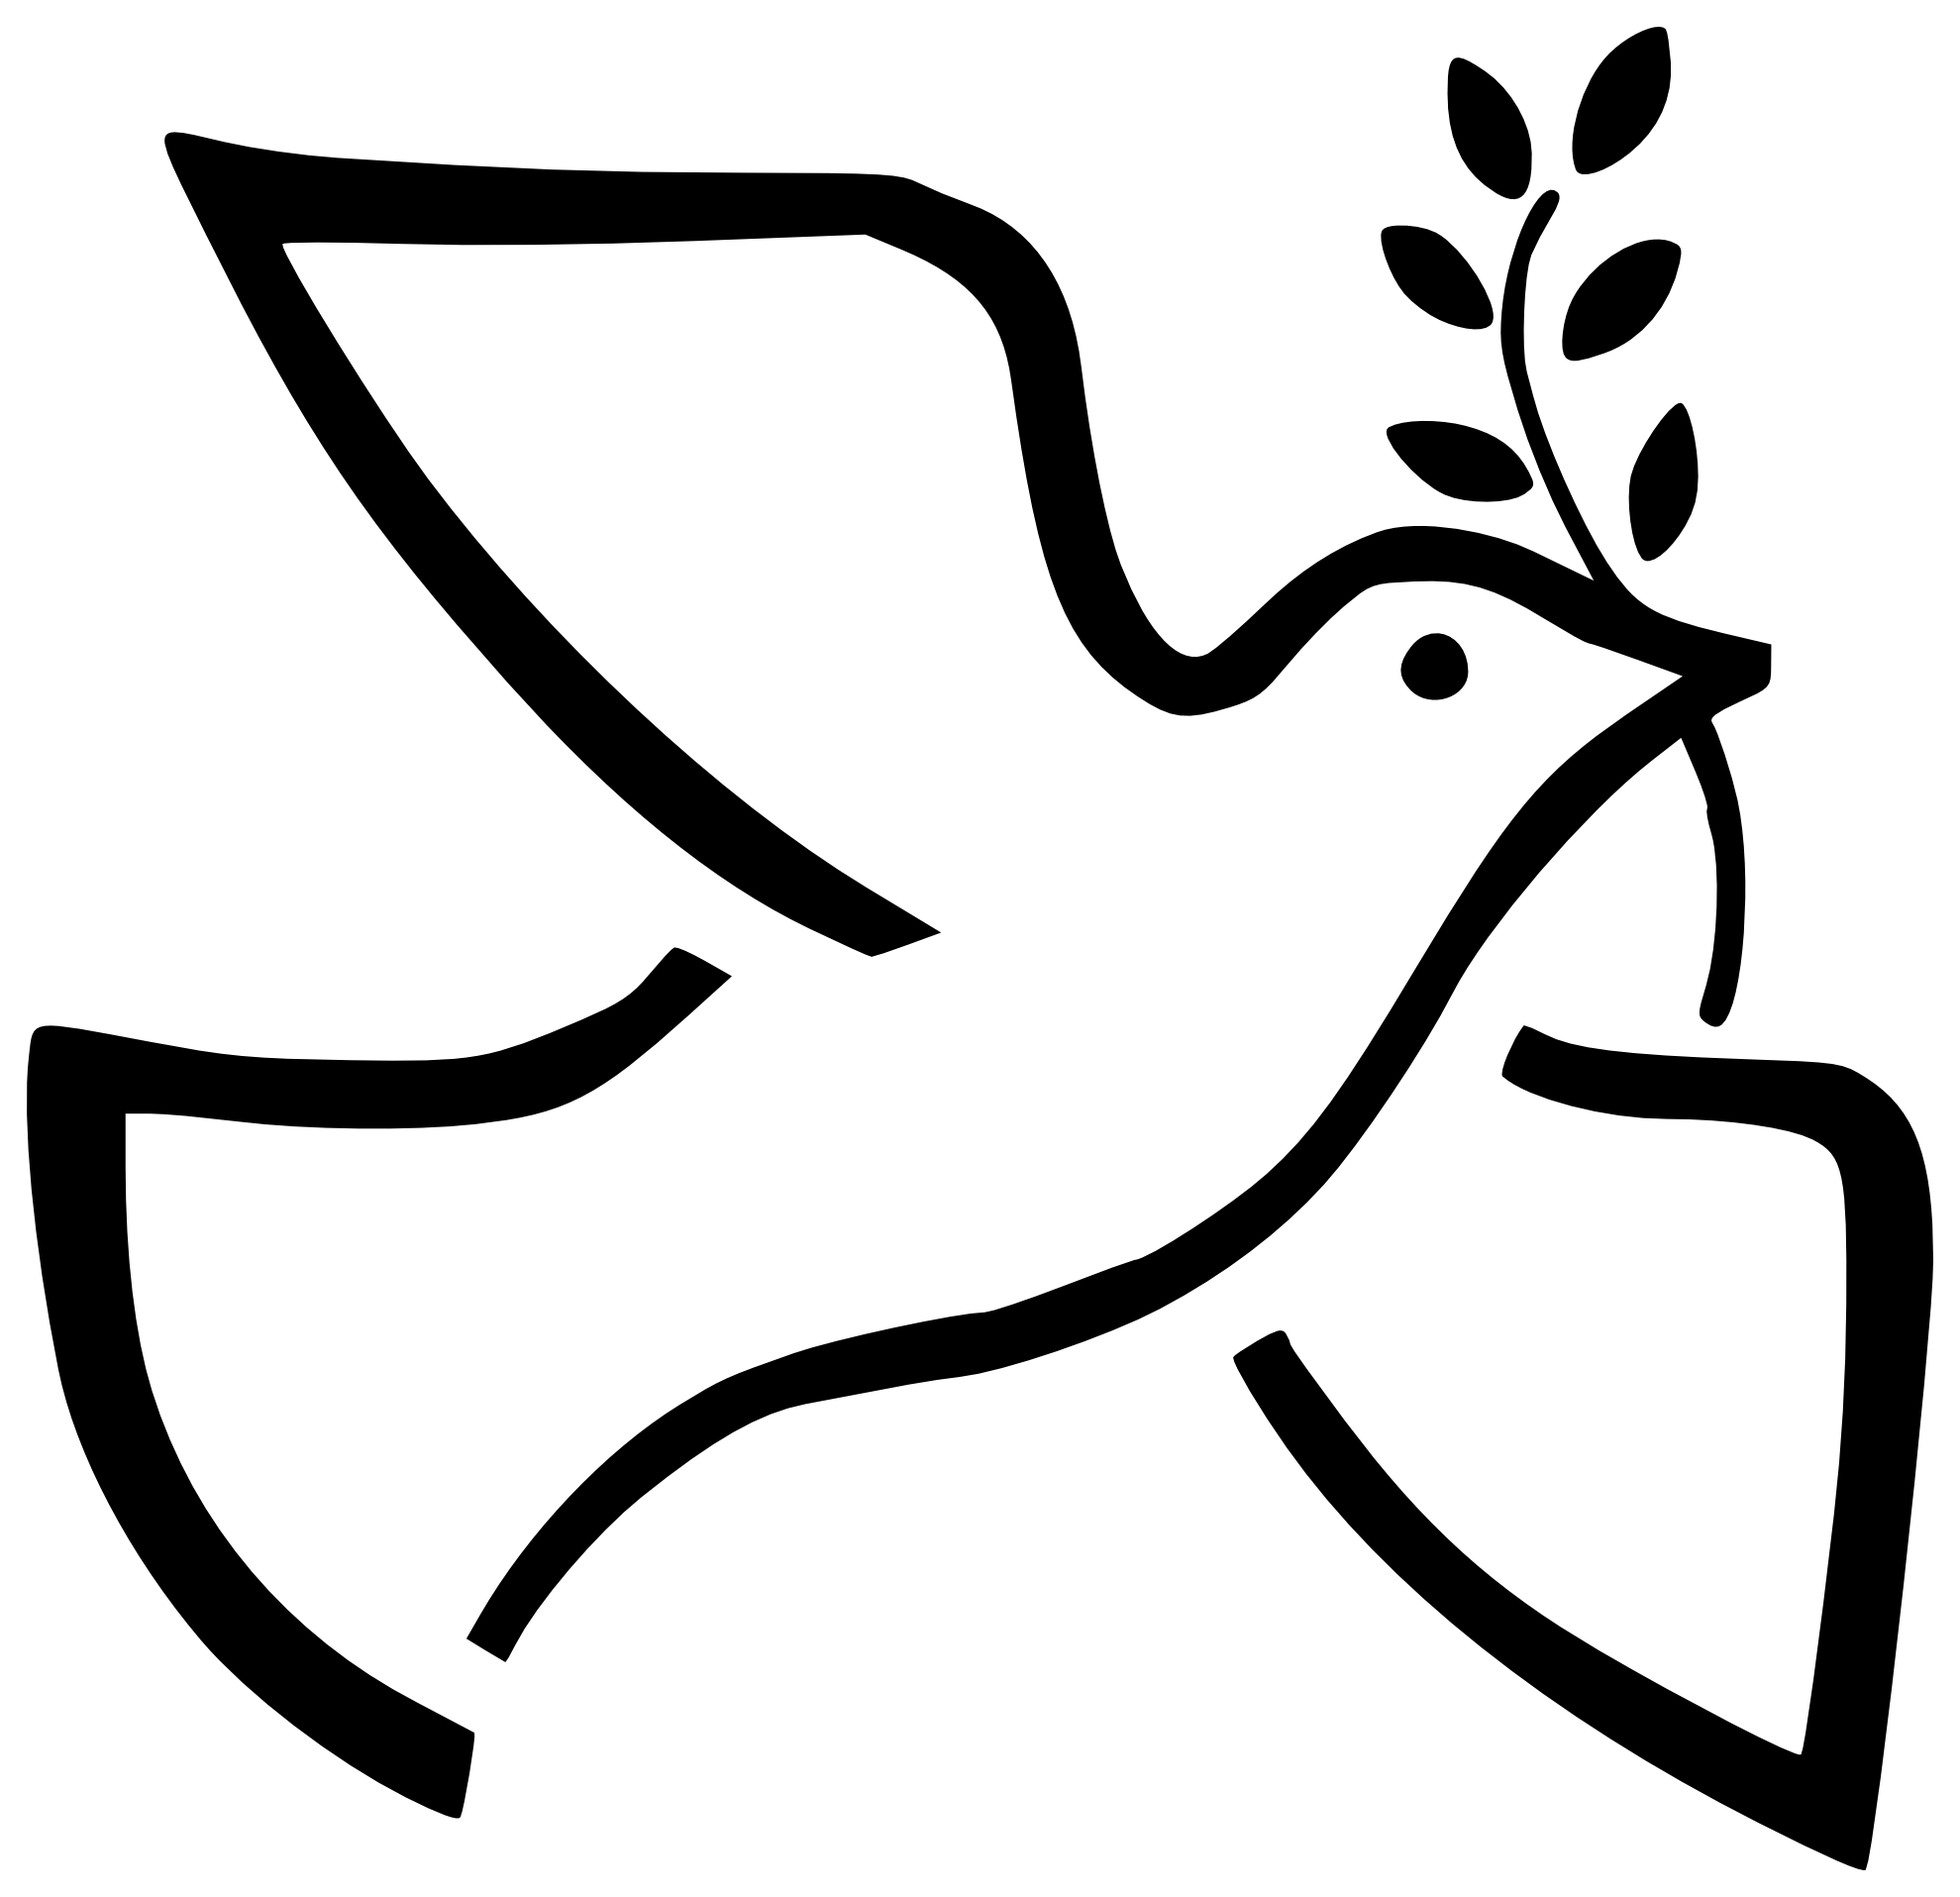 Dove Clipart Silhouette | Free download best Dove Clipart